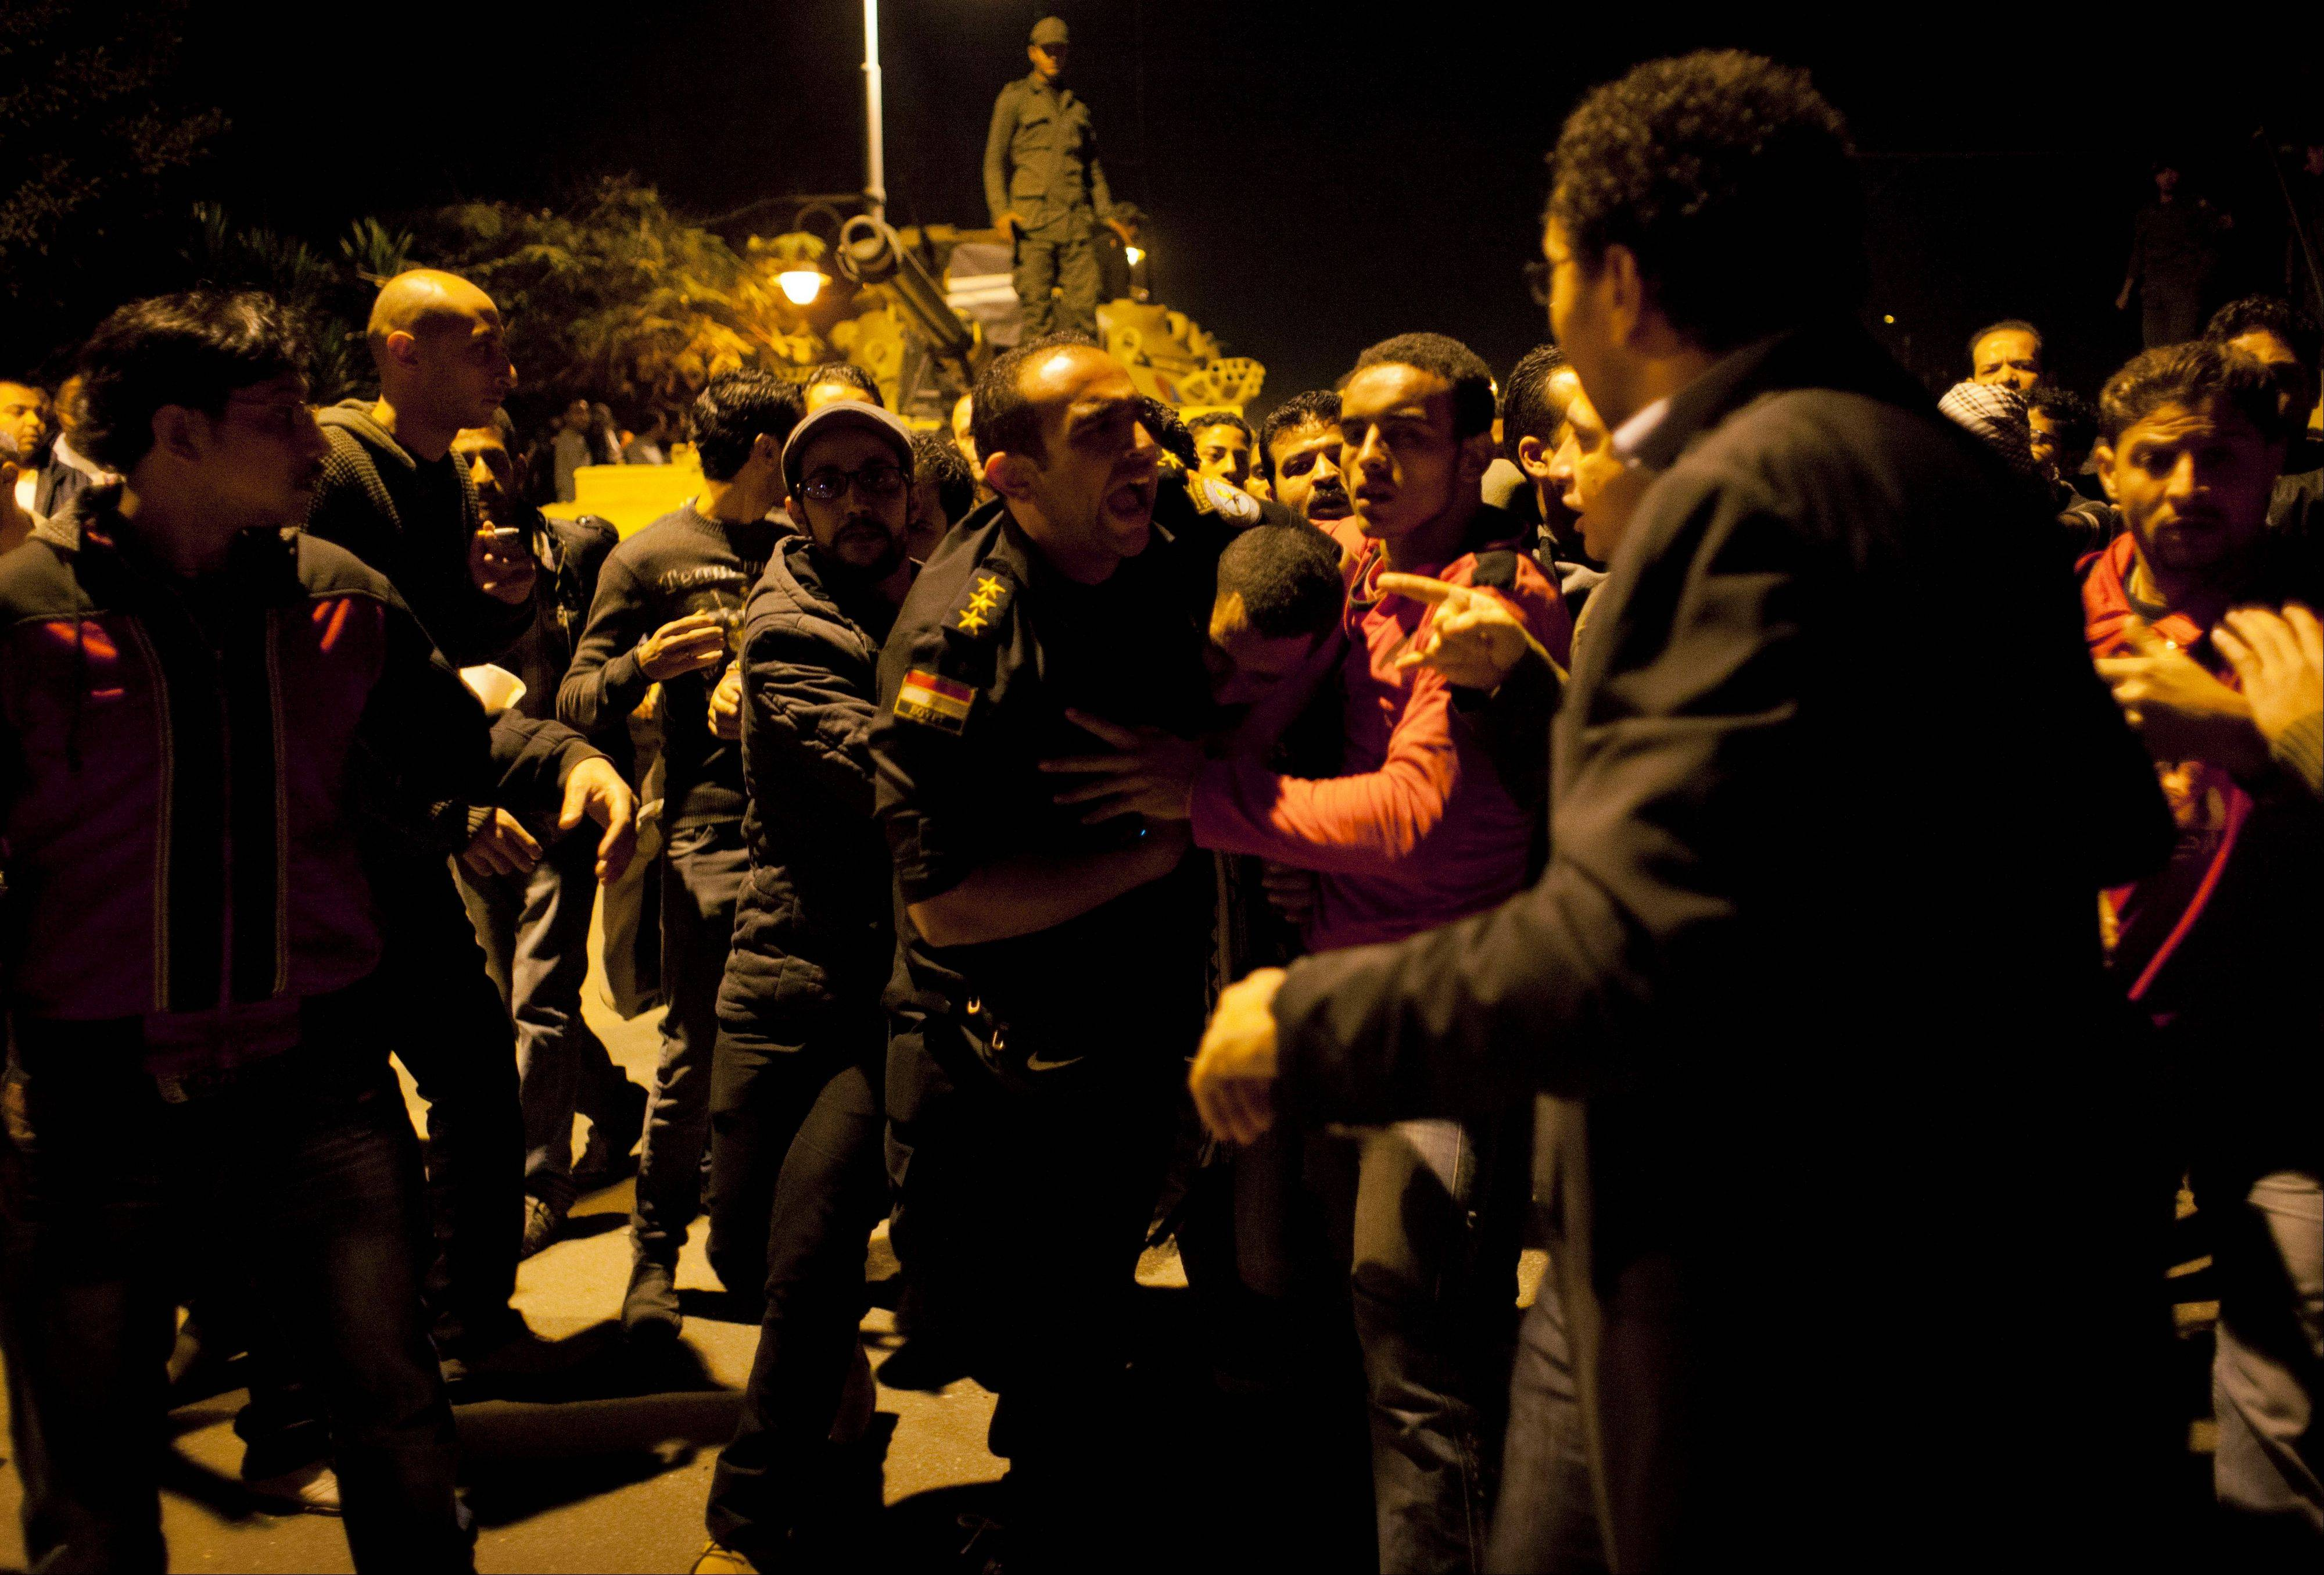 An Egyptian army officers detain and protect a man who was attacked by protesters accusing him of being an agent of the Muslim Brotherhood during protests Friday opposing Egyptian President Mohammed Mosri, at the walls of the presidential palace.